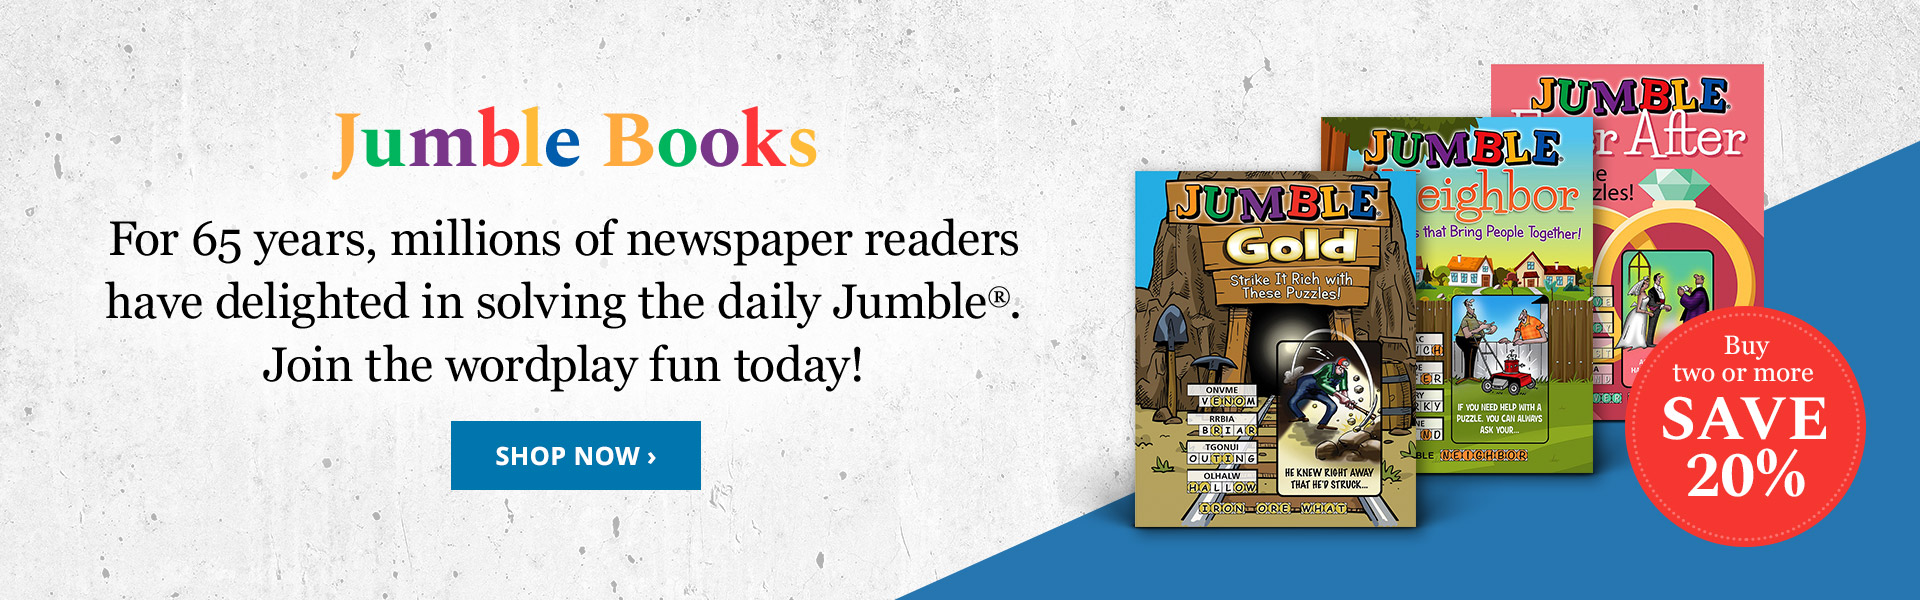 For 65 years, millions of newspaper readers have delighted in solving the daily Jumble®. Join the wordplay fun today!